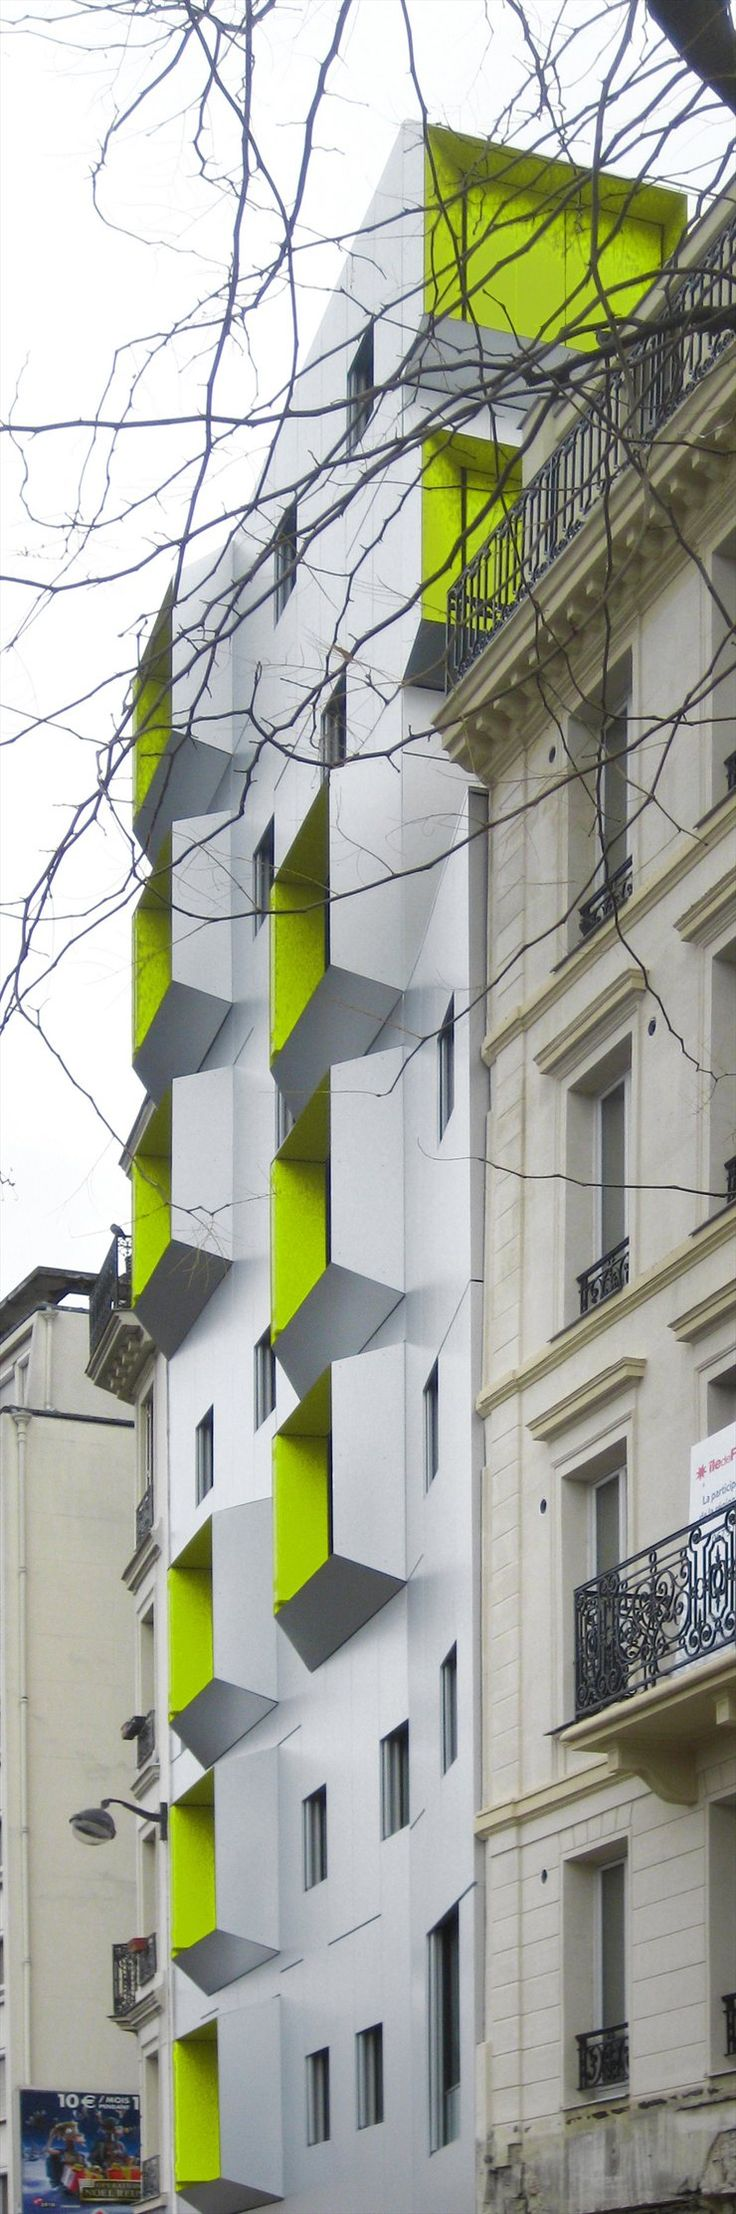 DPU Social Housing, Paris 18, 2009 by X-TU architects #architecture #socialhousing #colors #paris #france #fluo #neon